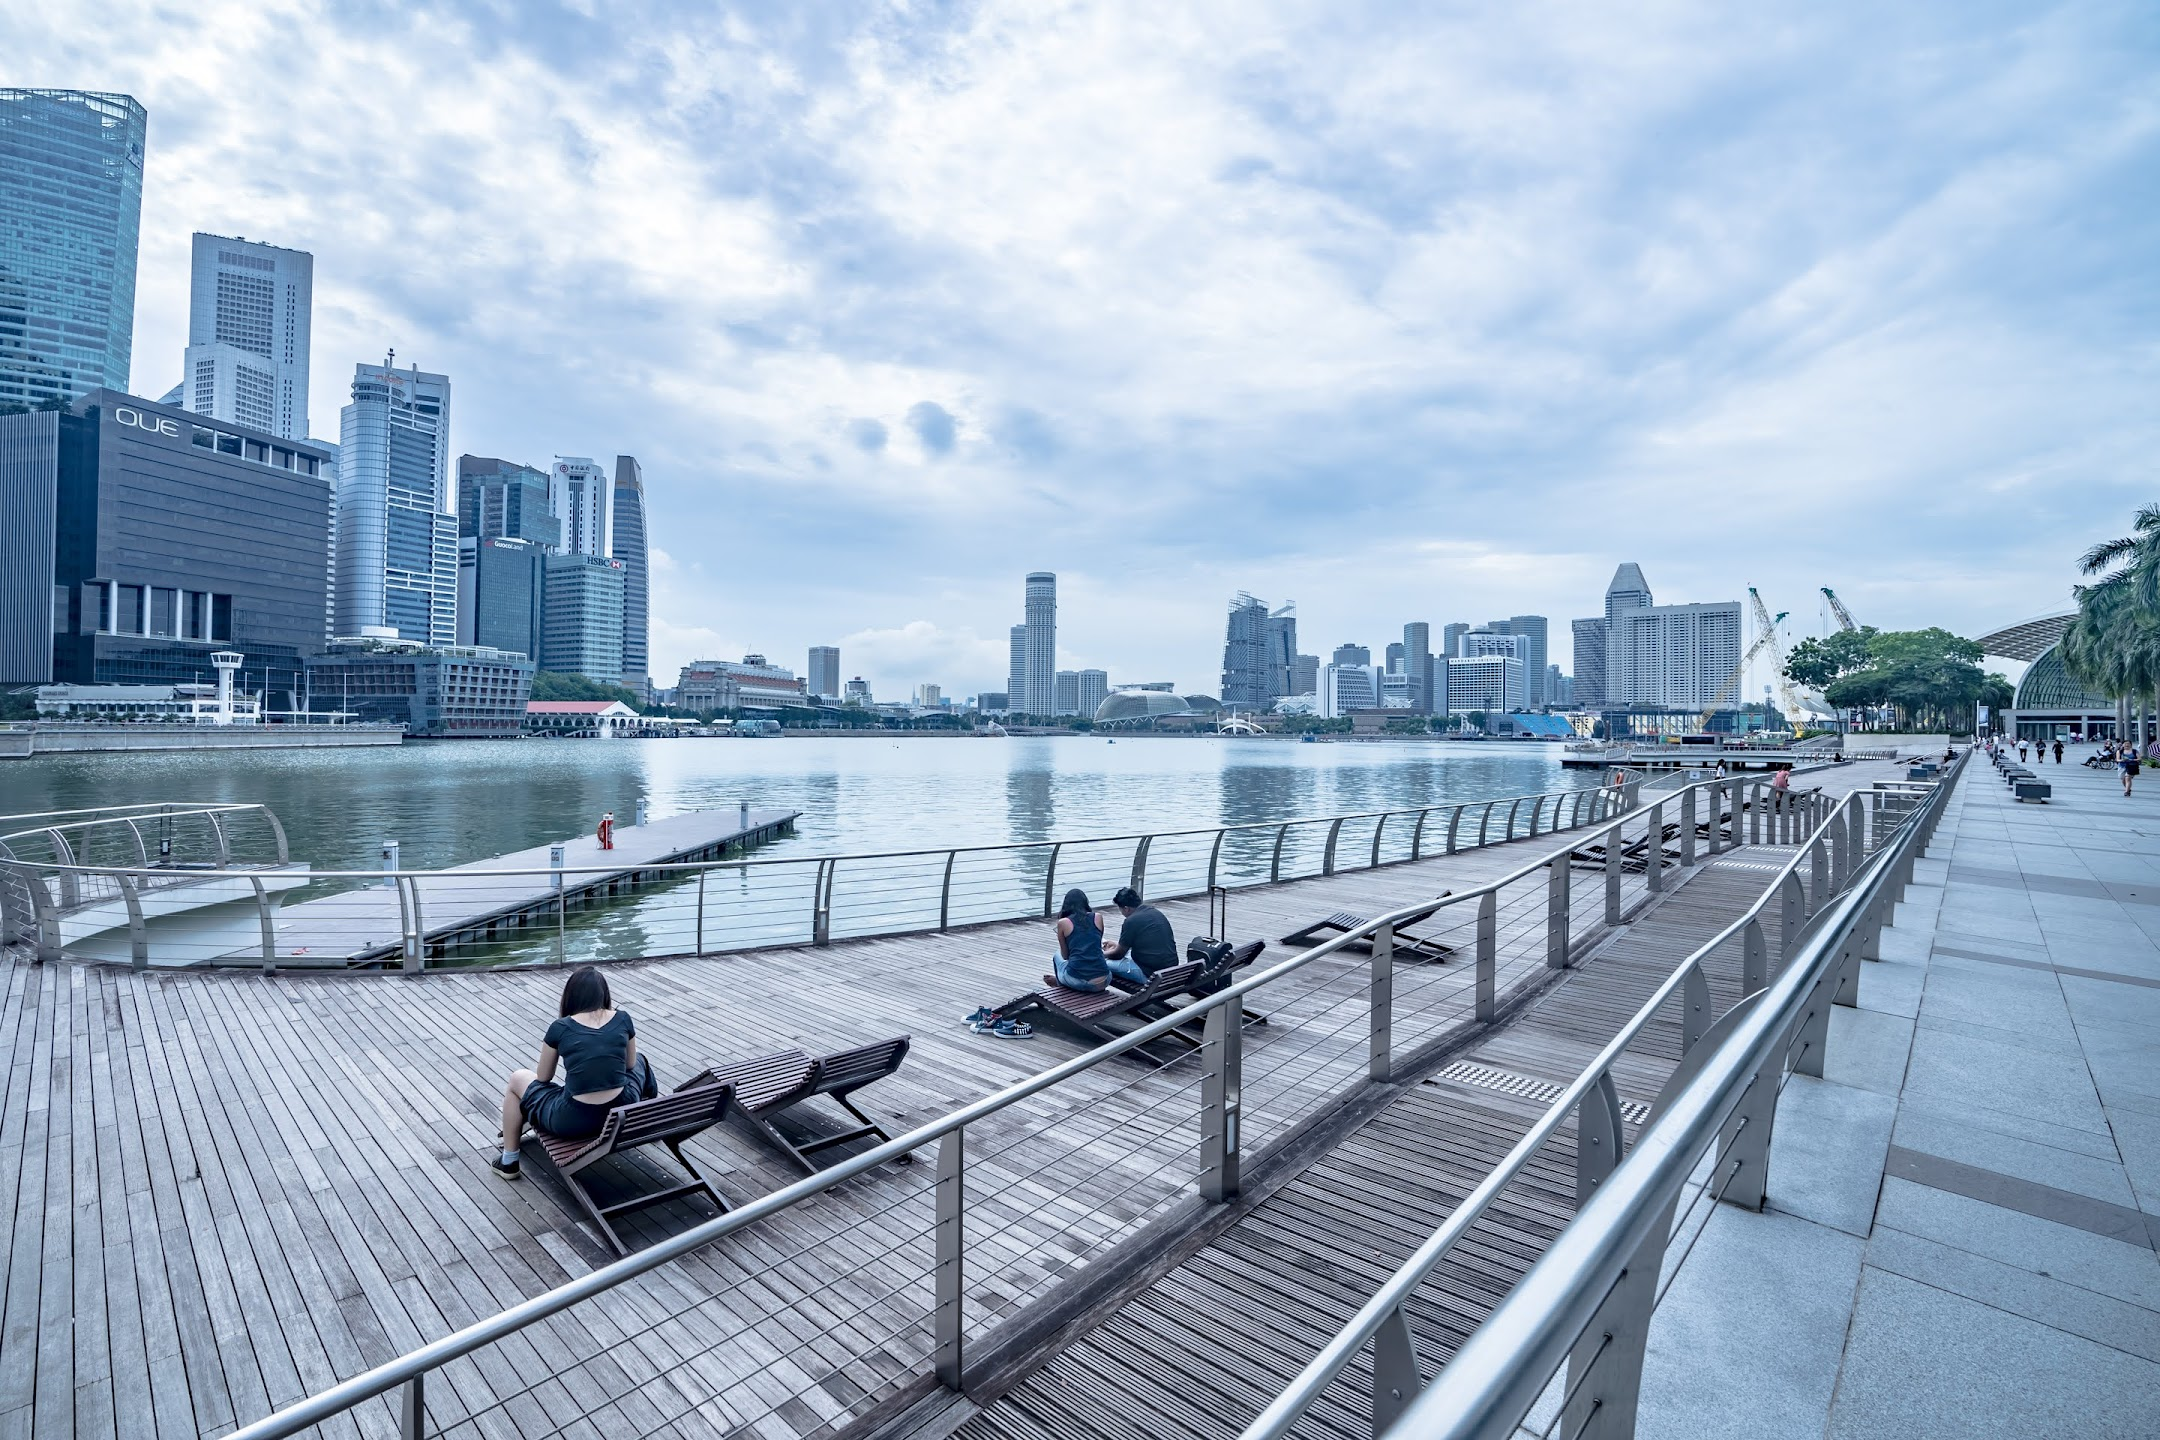 シンガポール Marina Bay Waterfront Promenade1